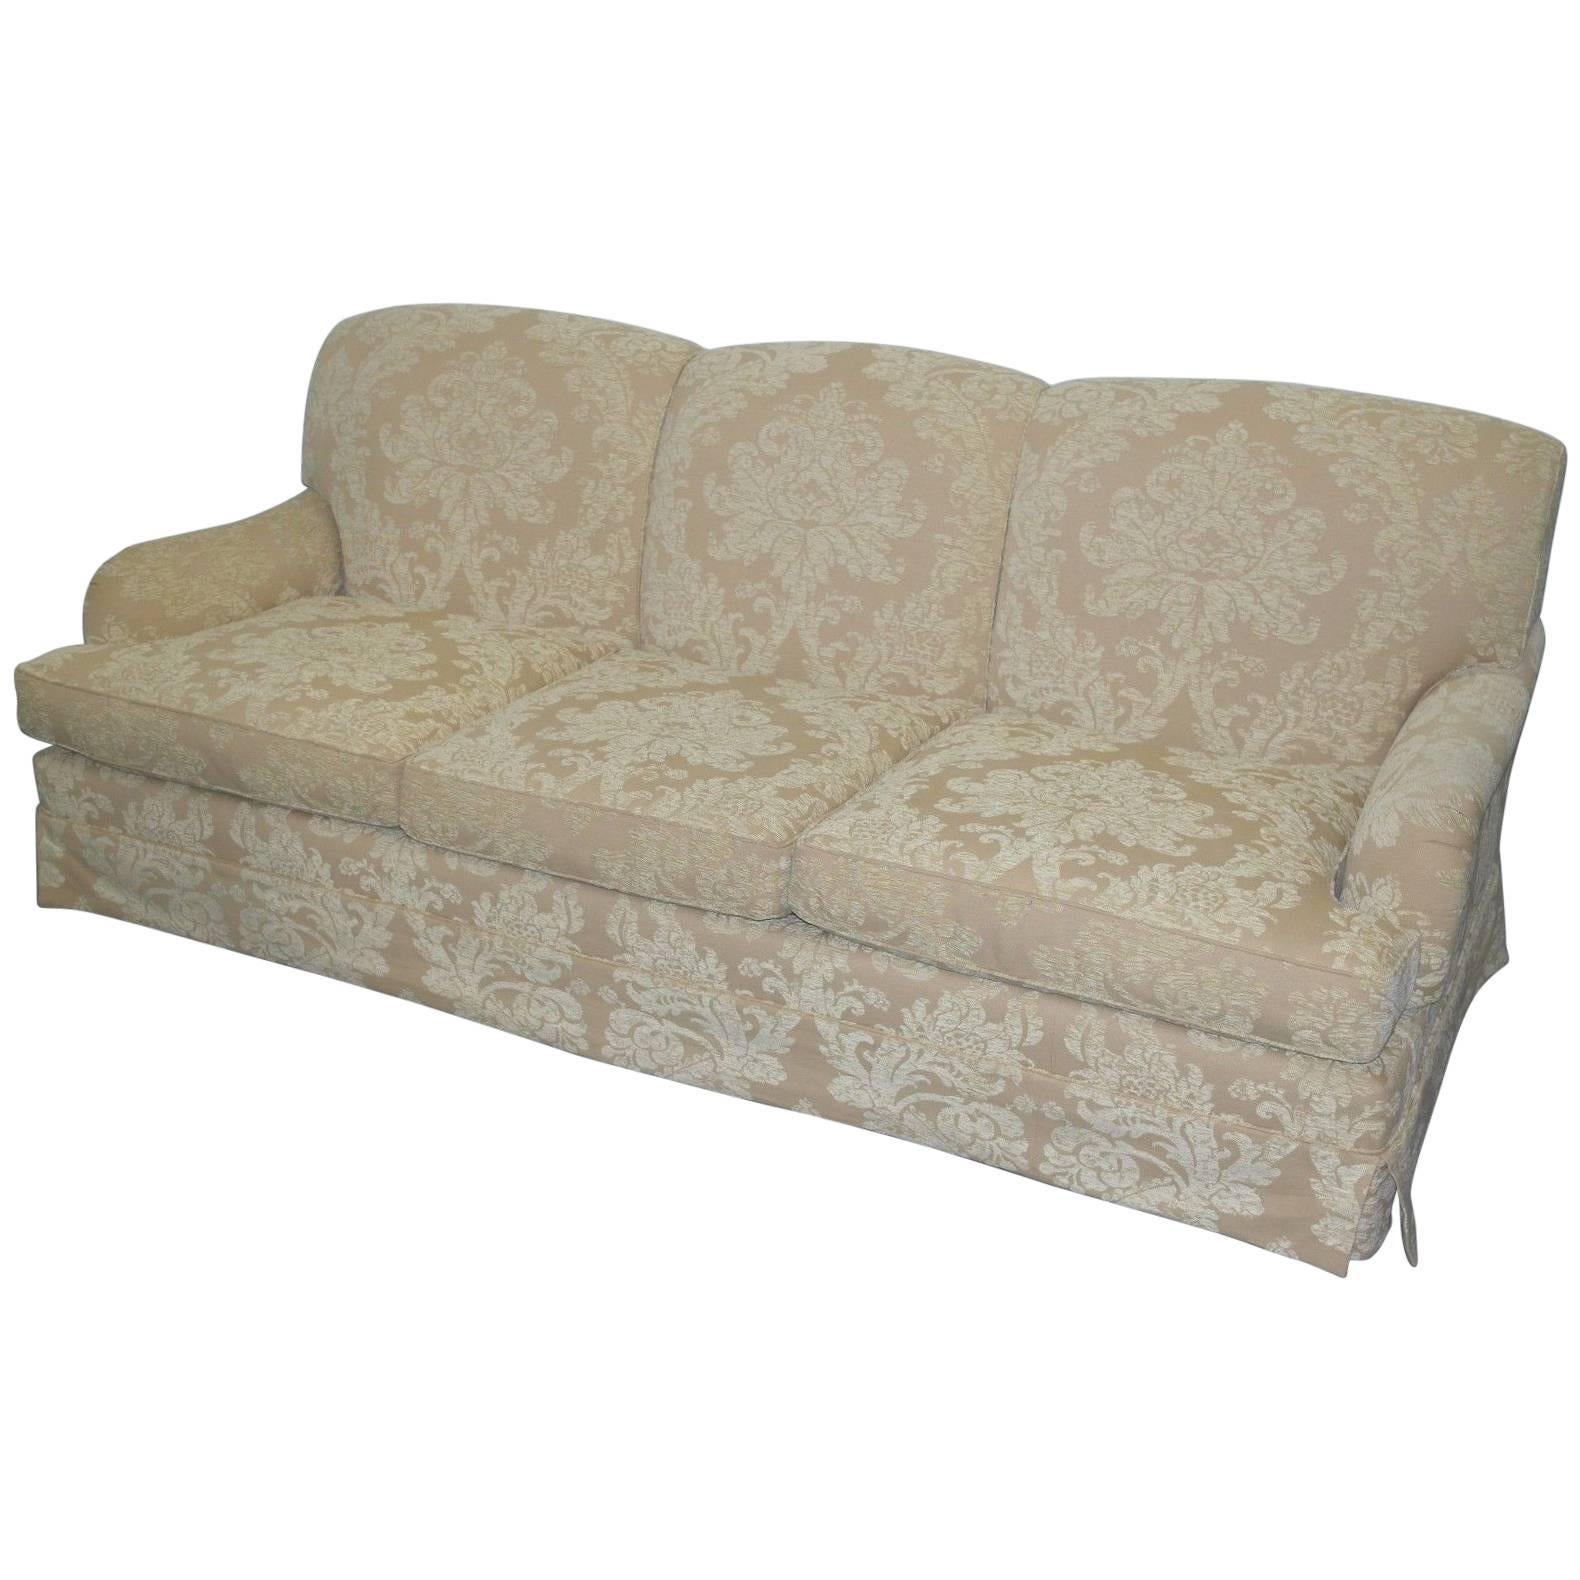 Beaumont And Fletcher Brooke Howard Form Sofa With Damask Upholstery For  Sale